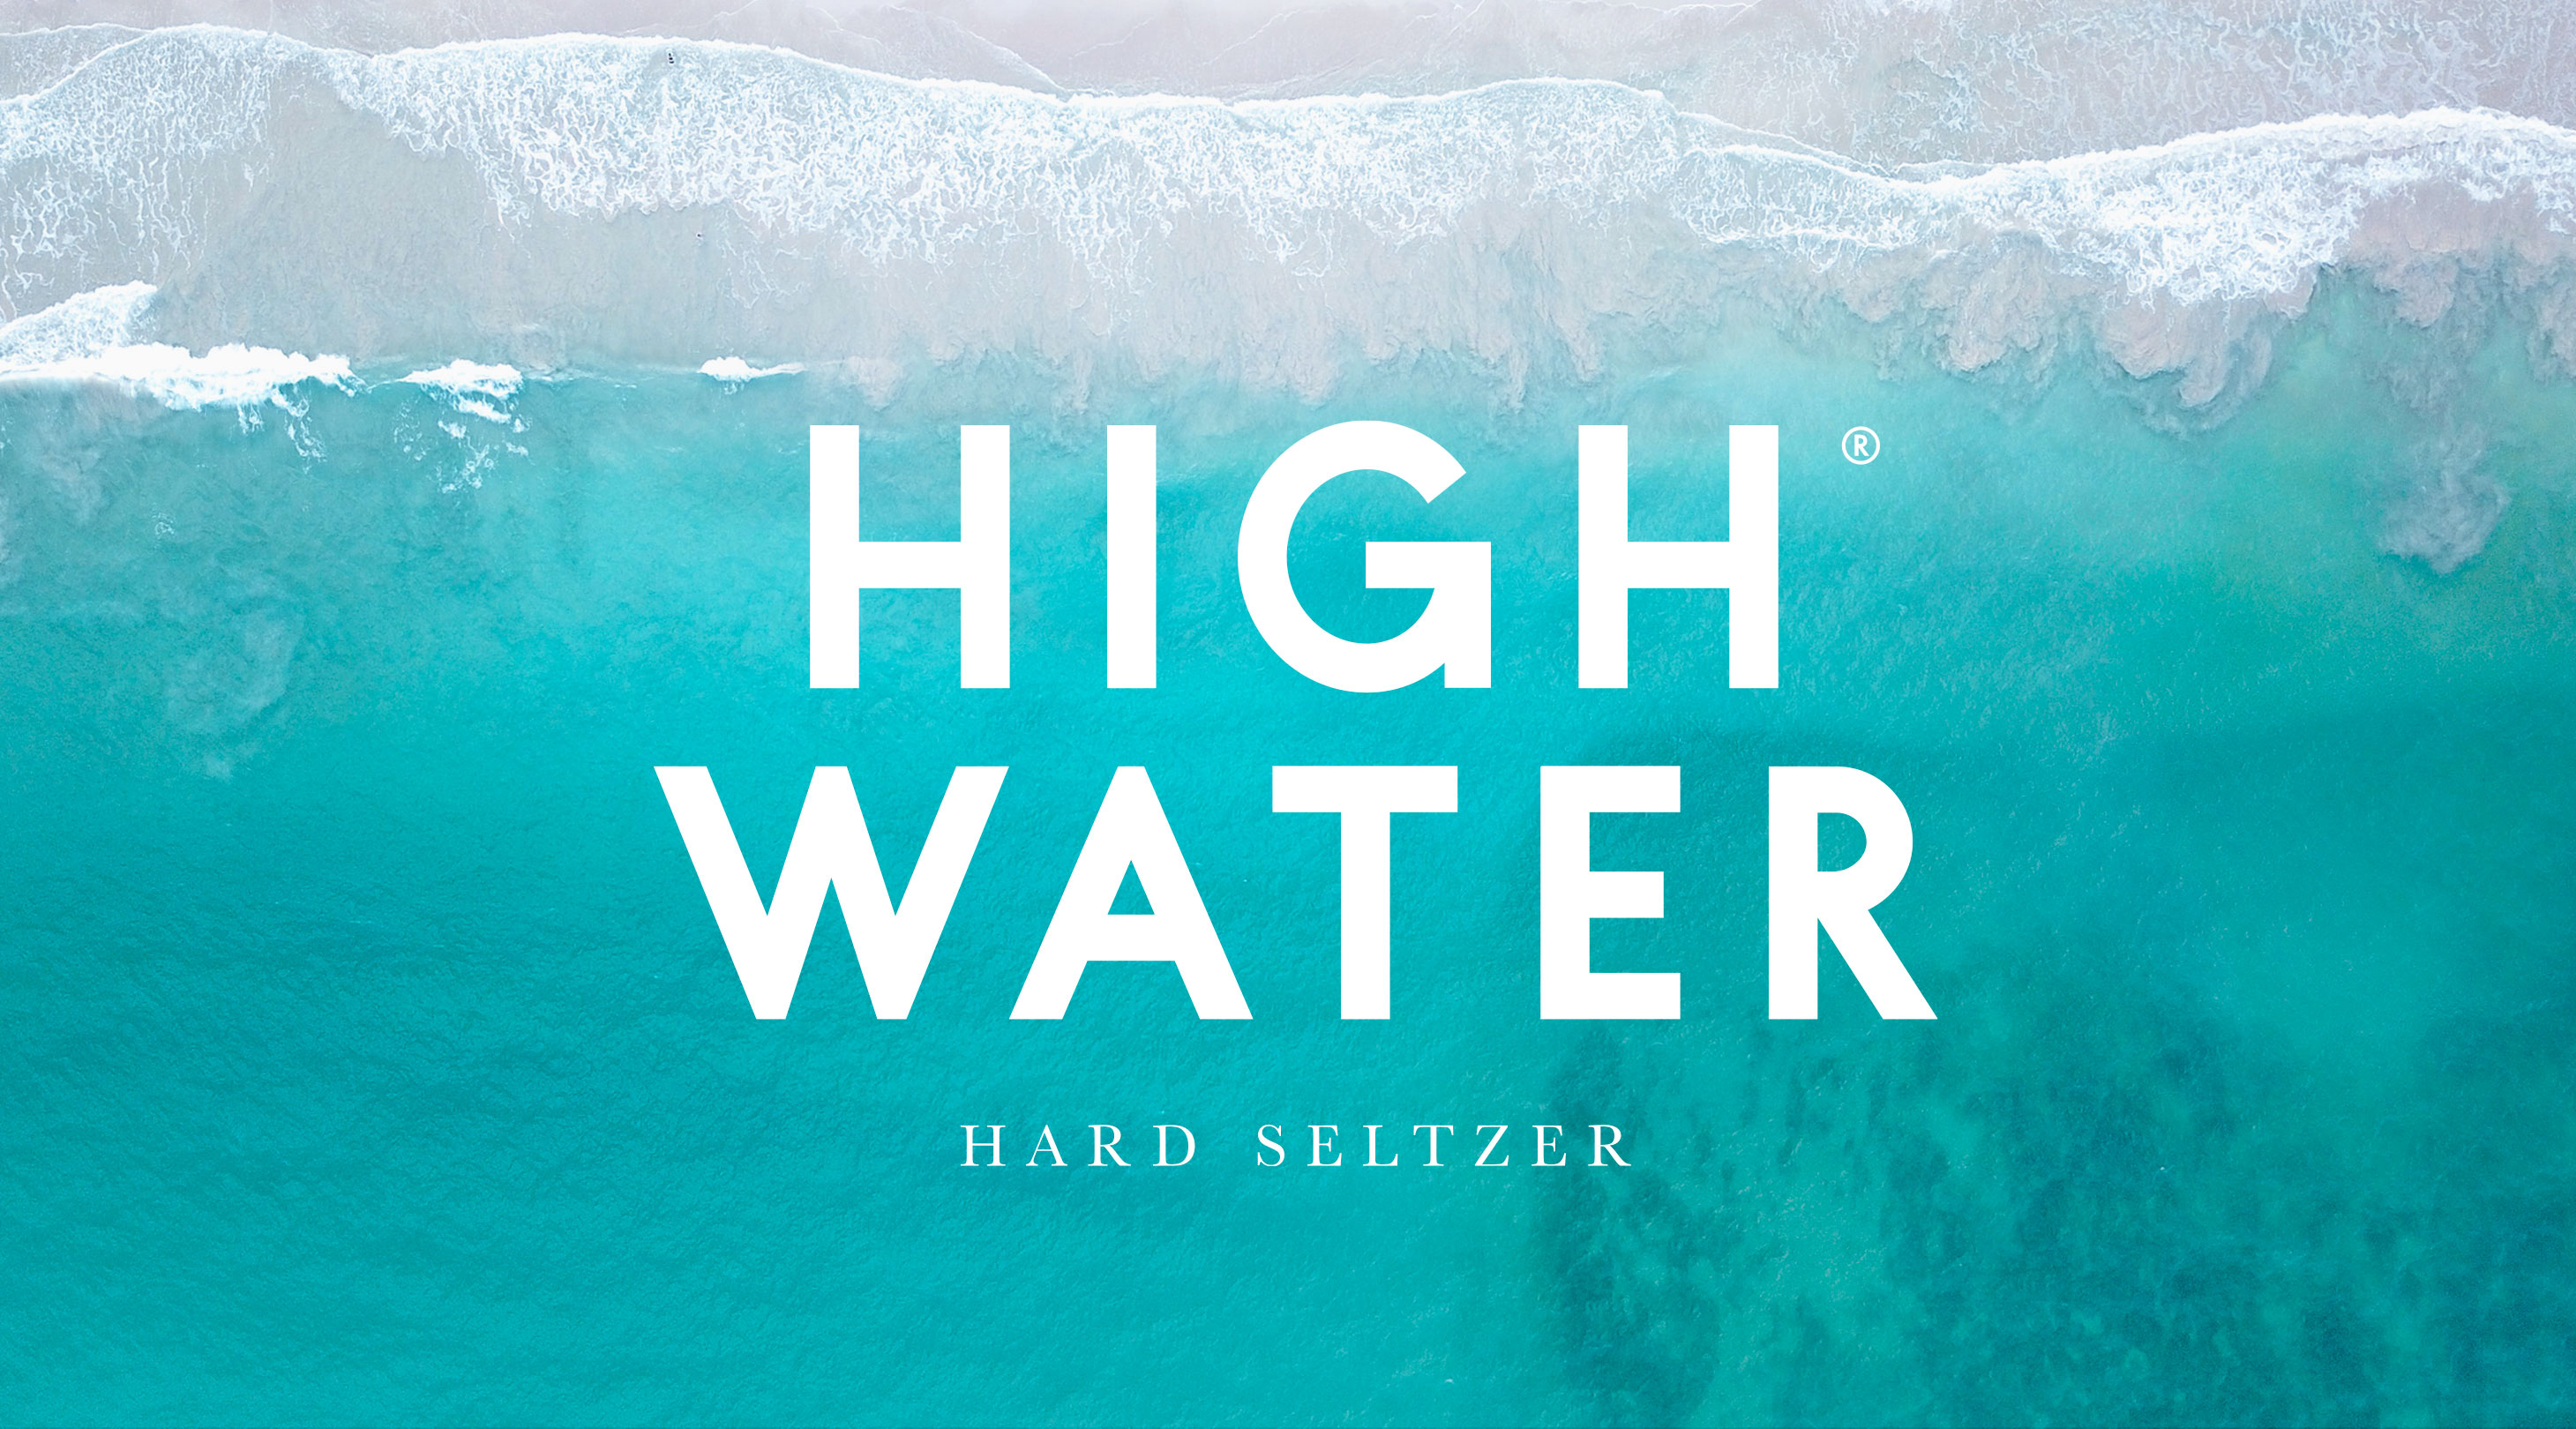 High Water Hard Seltzer Brand Creation by Midday